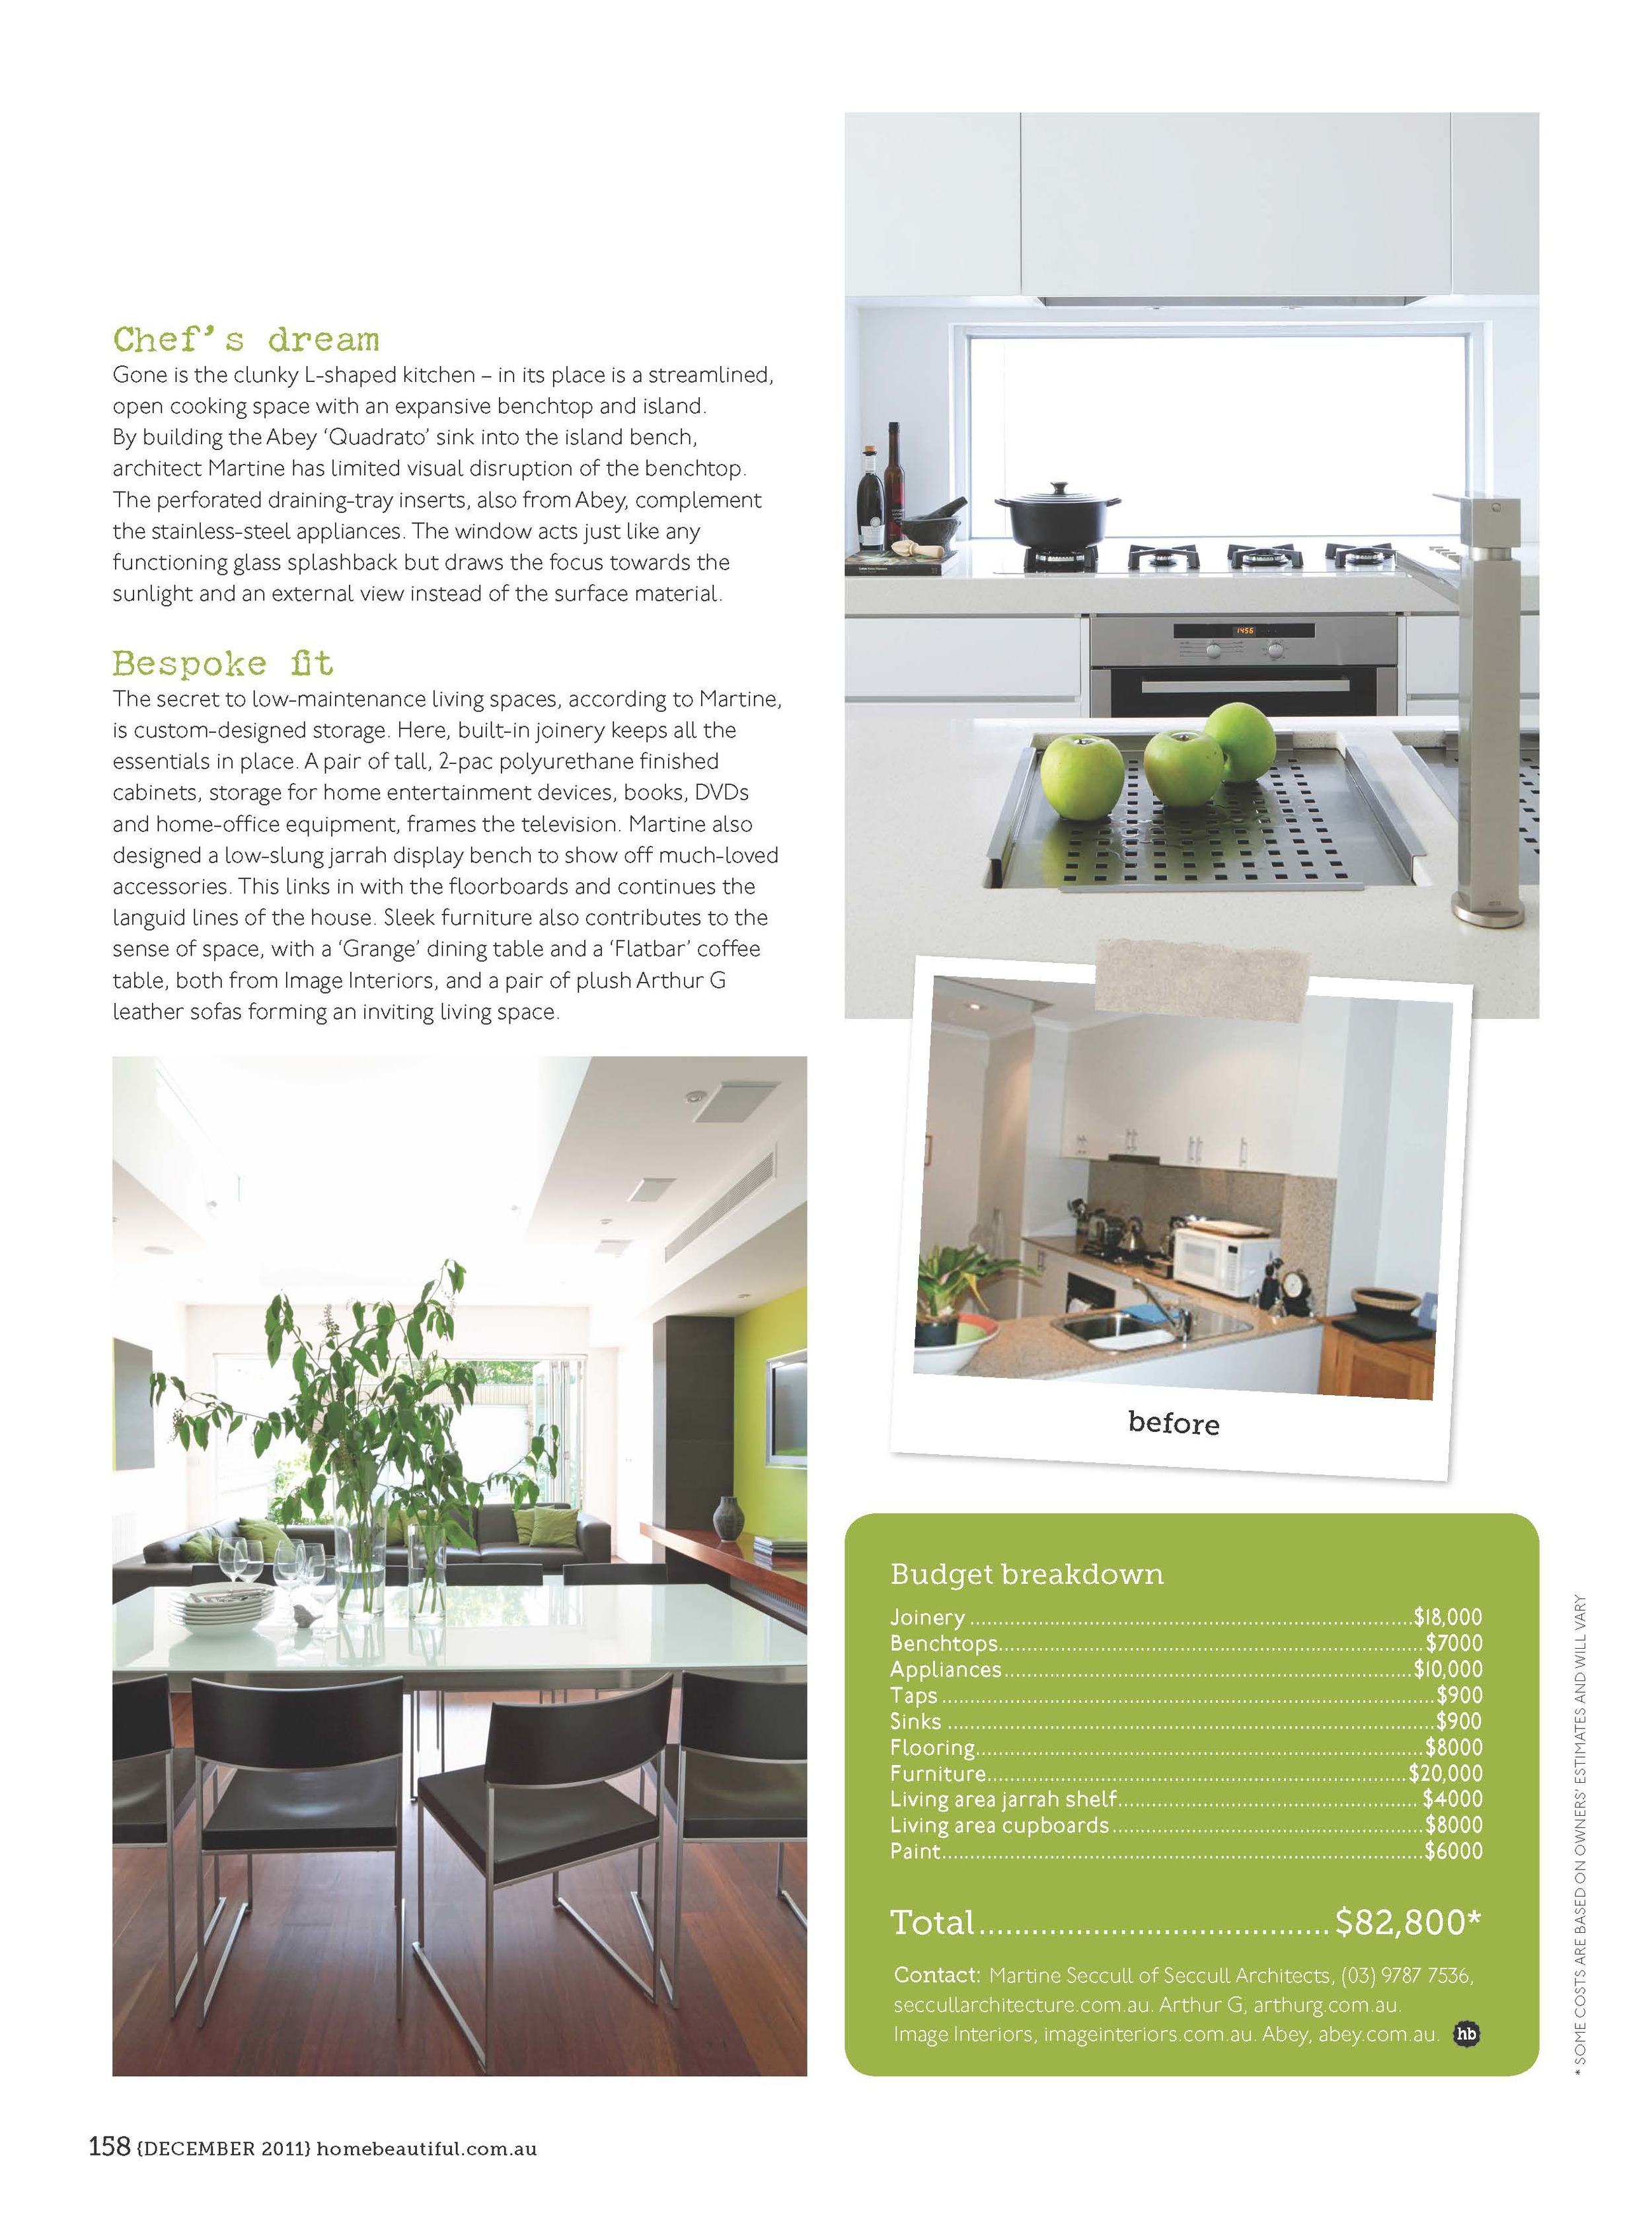 Home Beautiful article Dec 2011_Page_2.jpg